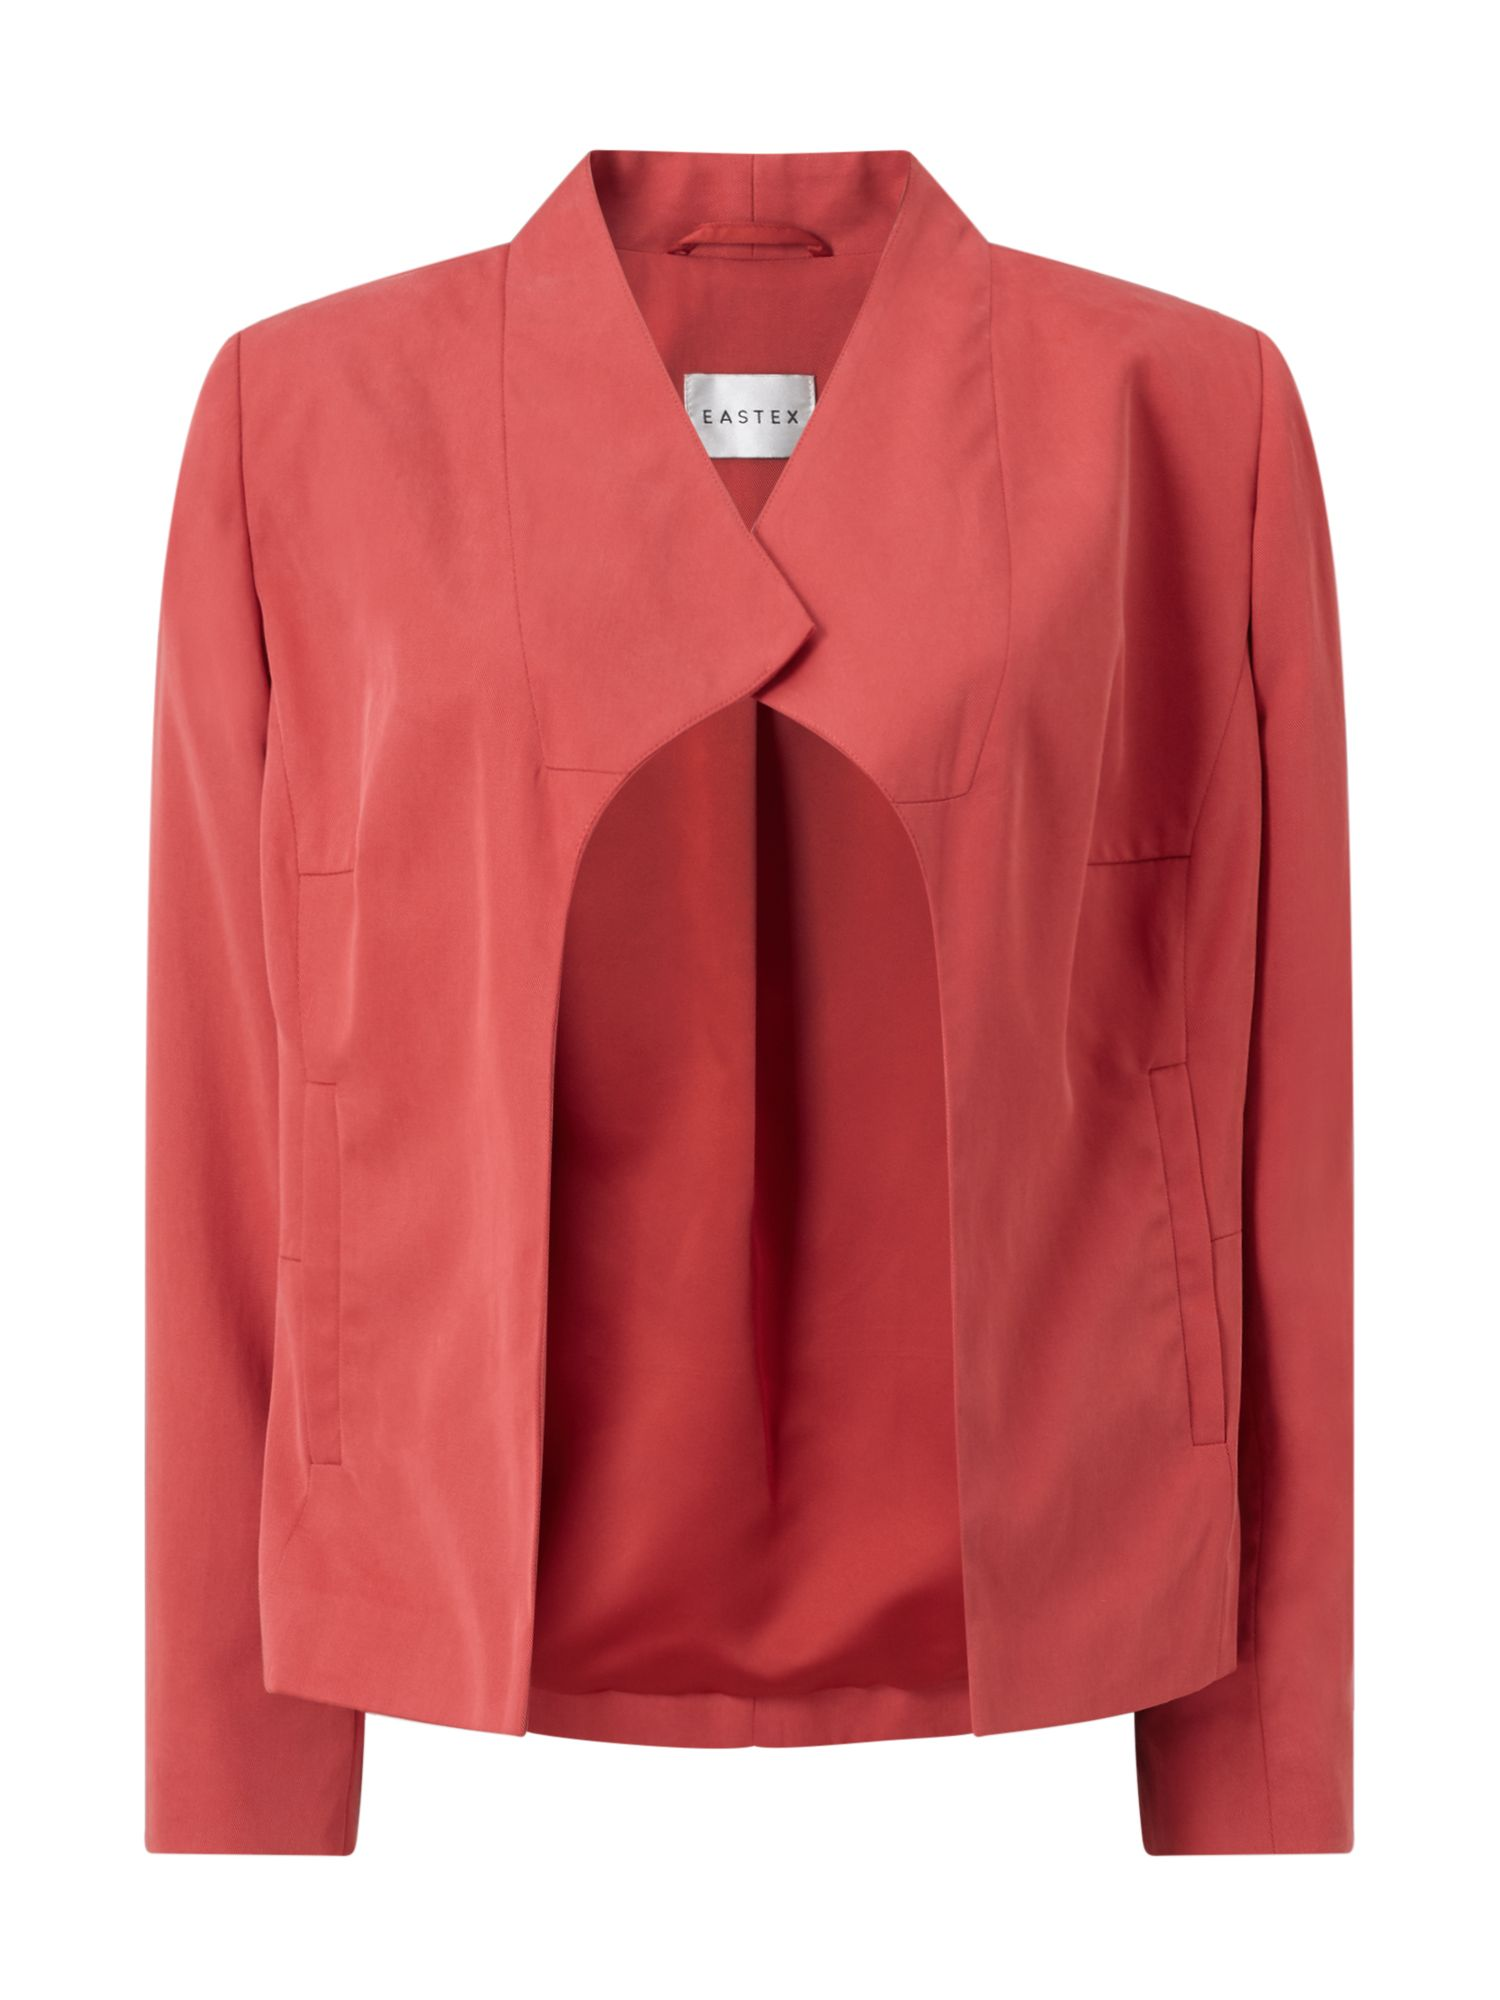 Eastex Soft Tencel Jacket, Red